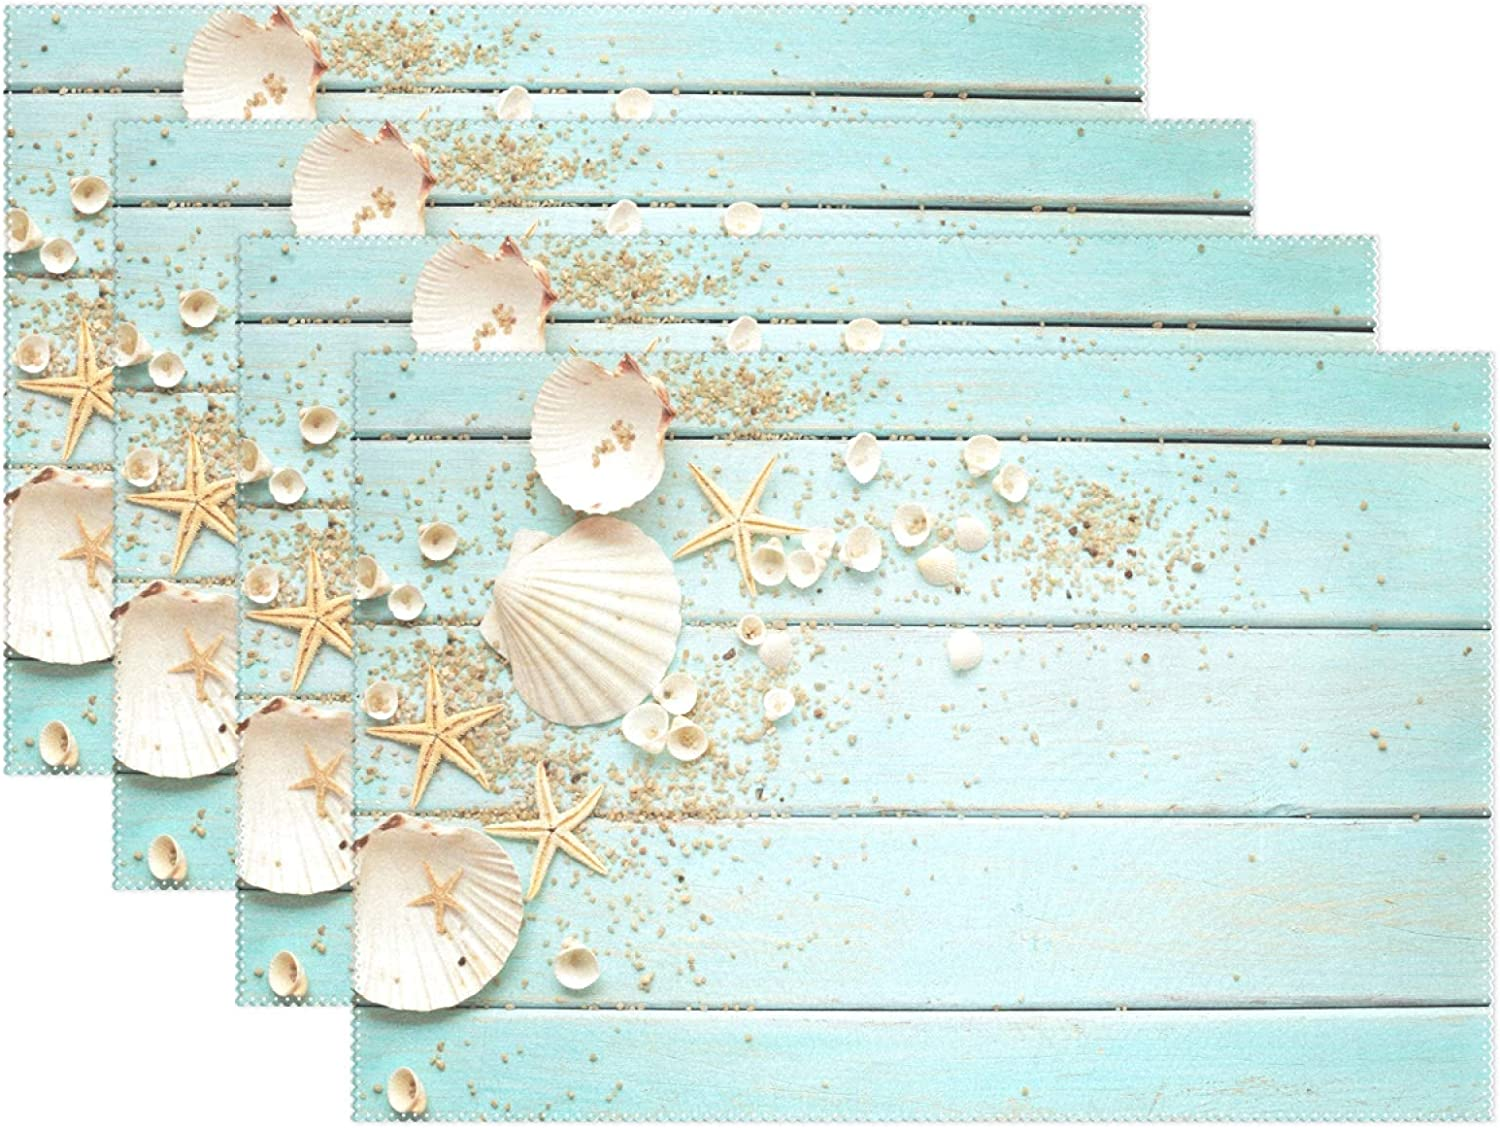 Wamika Sea Shell Beach Placemat Set of 4 Table Mat, Summer Starfish Board Table Mats Placemats 12x18 in for Dining Home Kitchen Decor Indoor